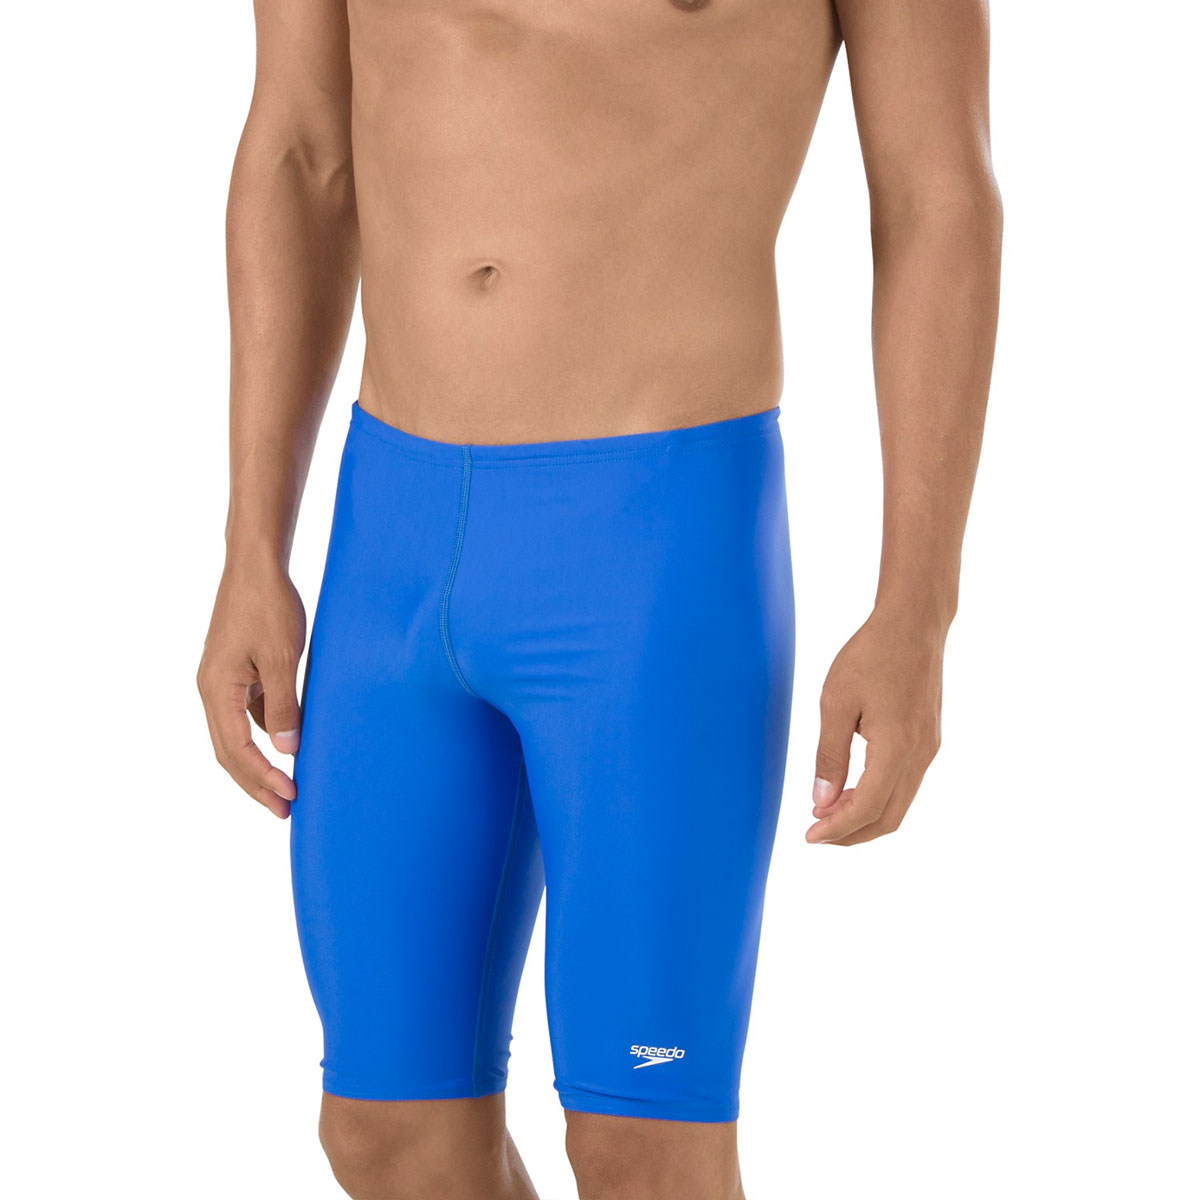 Men's Solid Jammer Swimsuit, Royal Bl,Sapphire,Marine, swatch